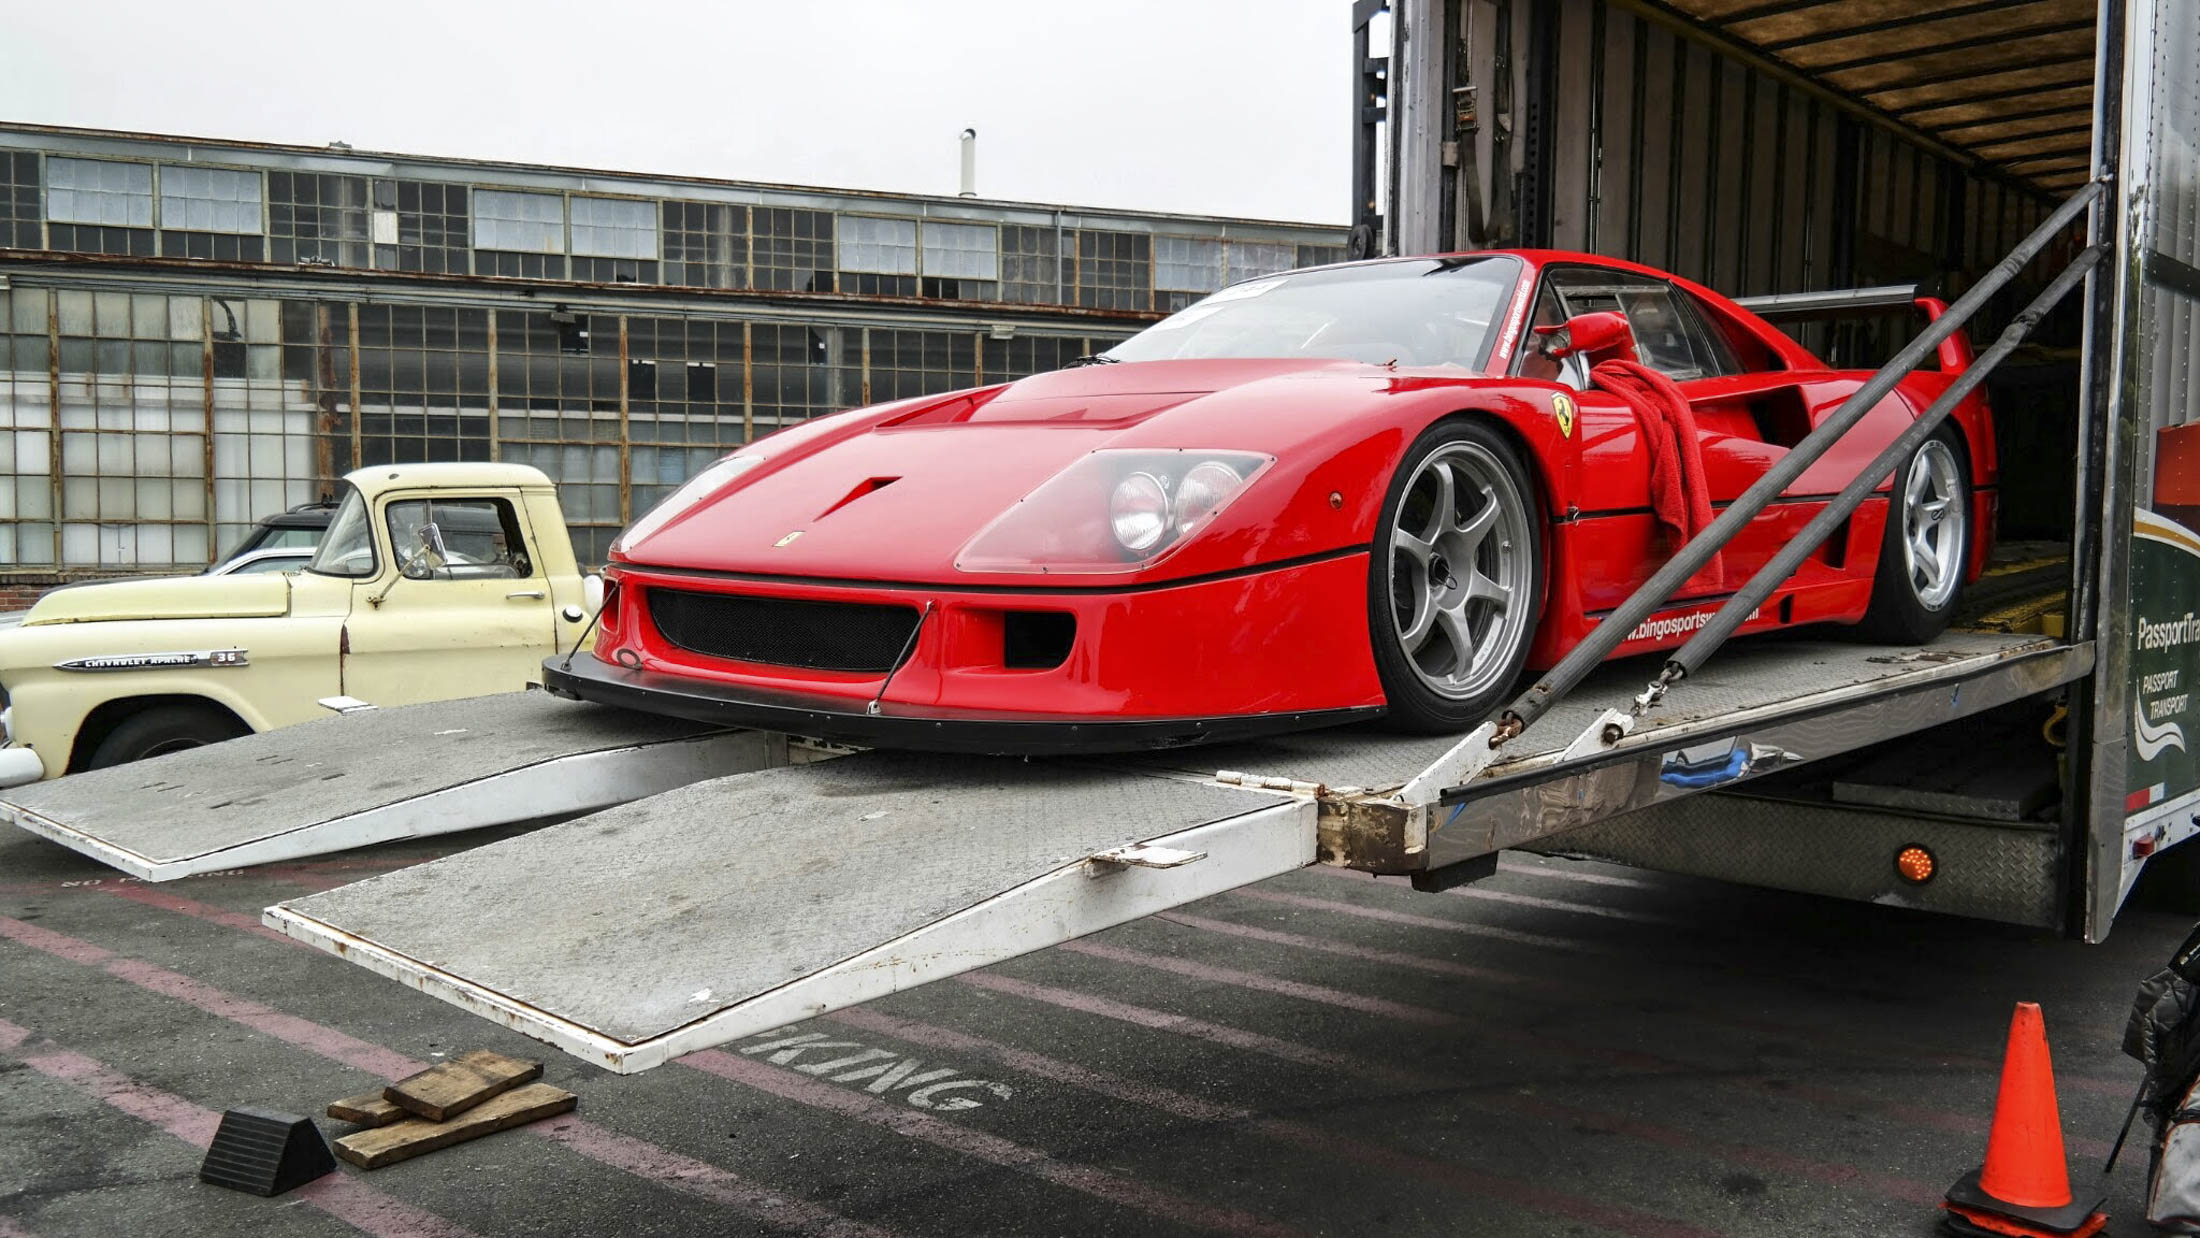 Leave detailed instructions with the shipper as to how to drive, park, and engage the parking brake on sensitive cars such as this Ferrari F40 LM. Photographer:Dmitriy Shibarshin